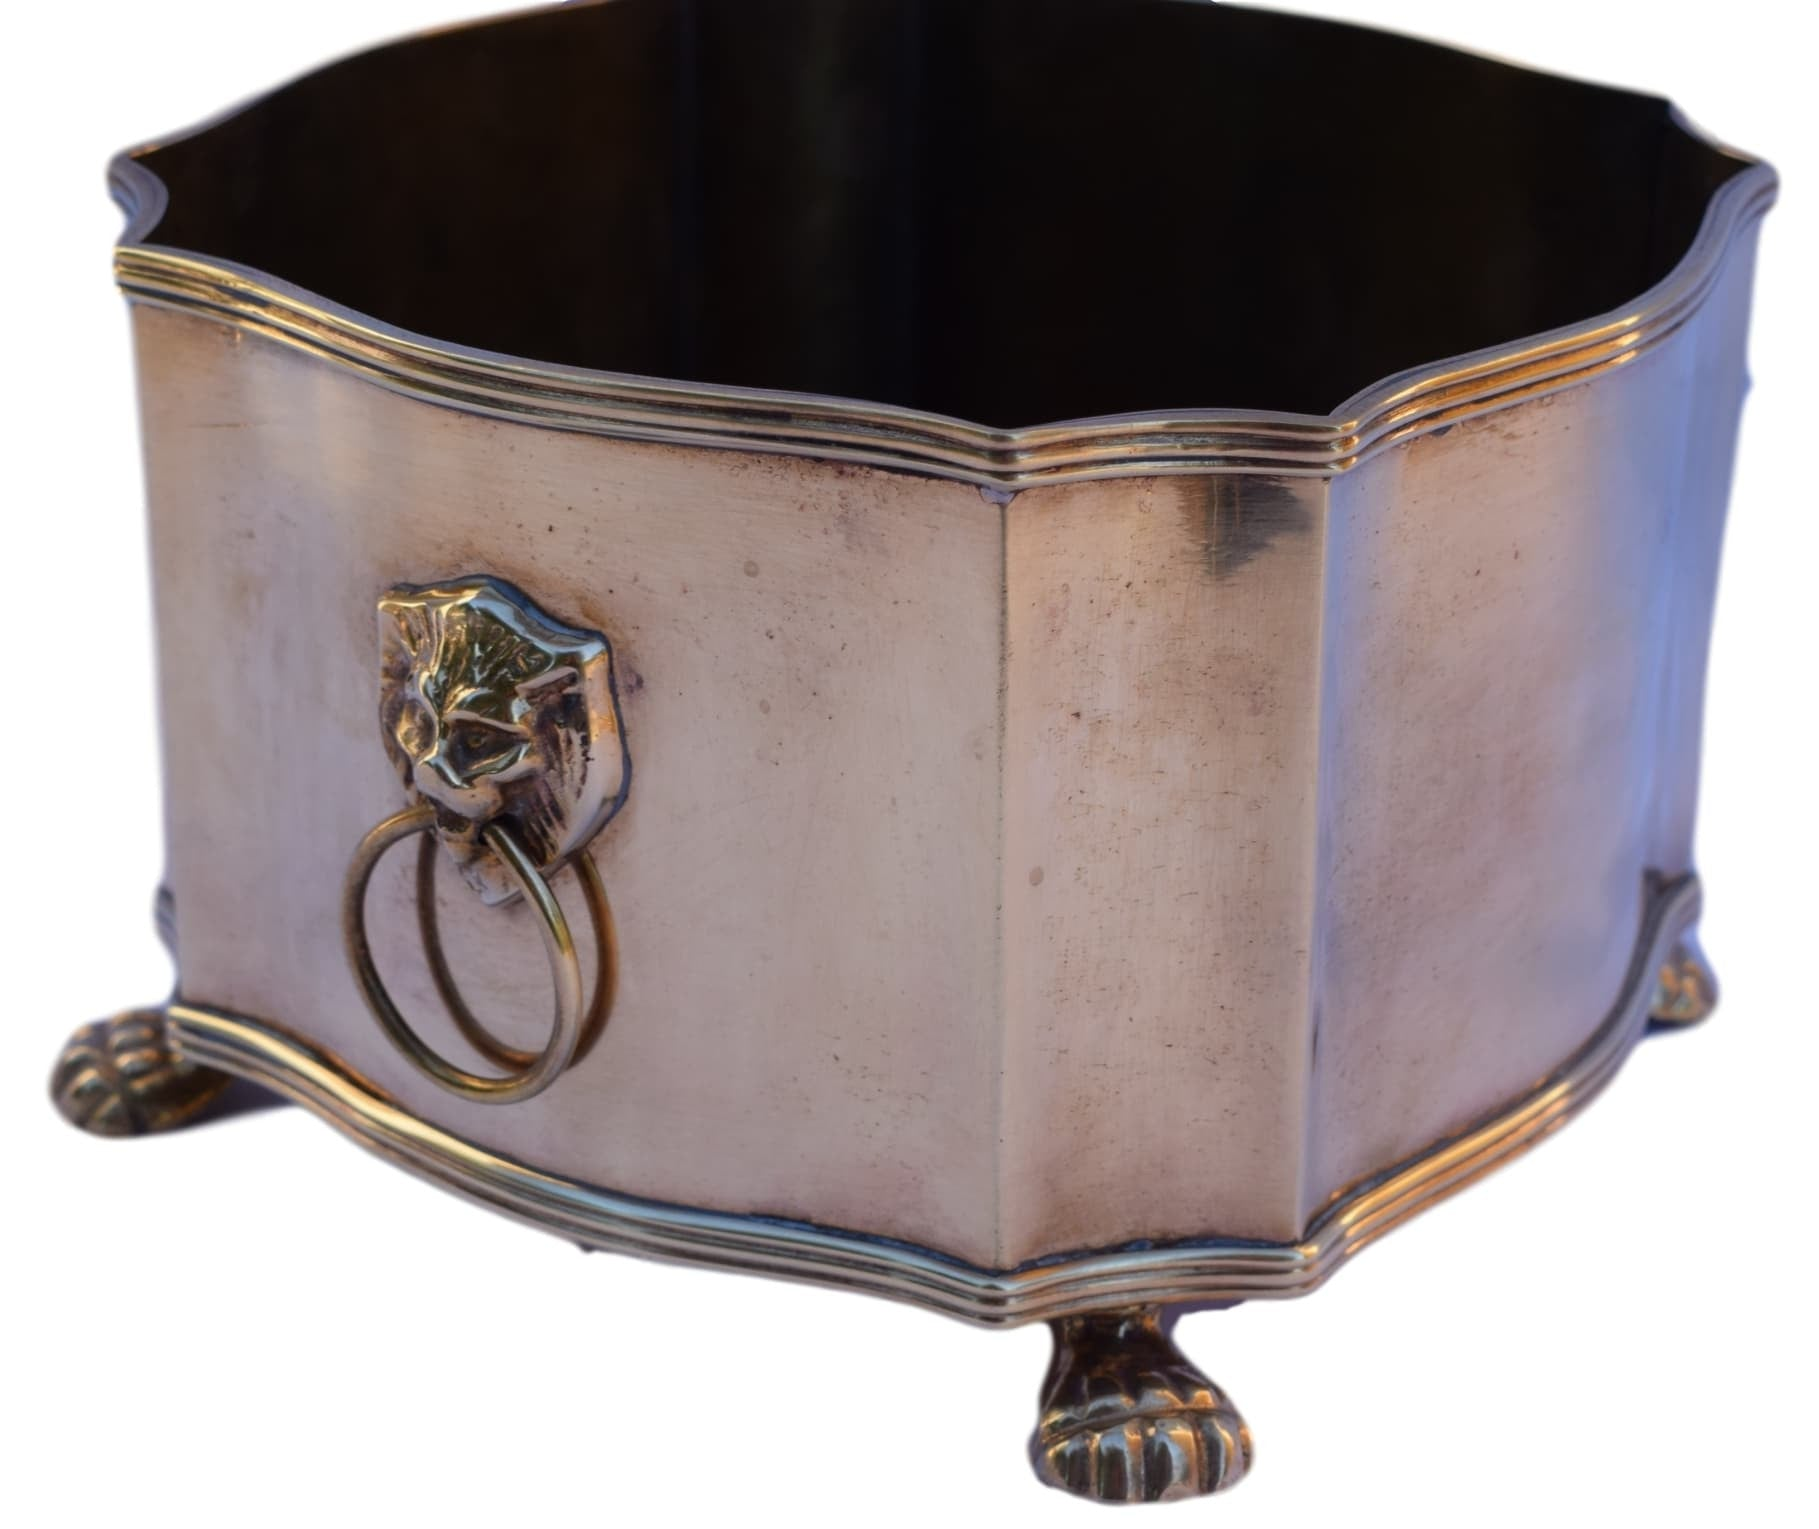 French Antique Directoire Style Brass and Bronze Jardiniere - Lion Paw and Head Handle Planter - French Chateau Garden Cache Pot - Chic